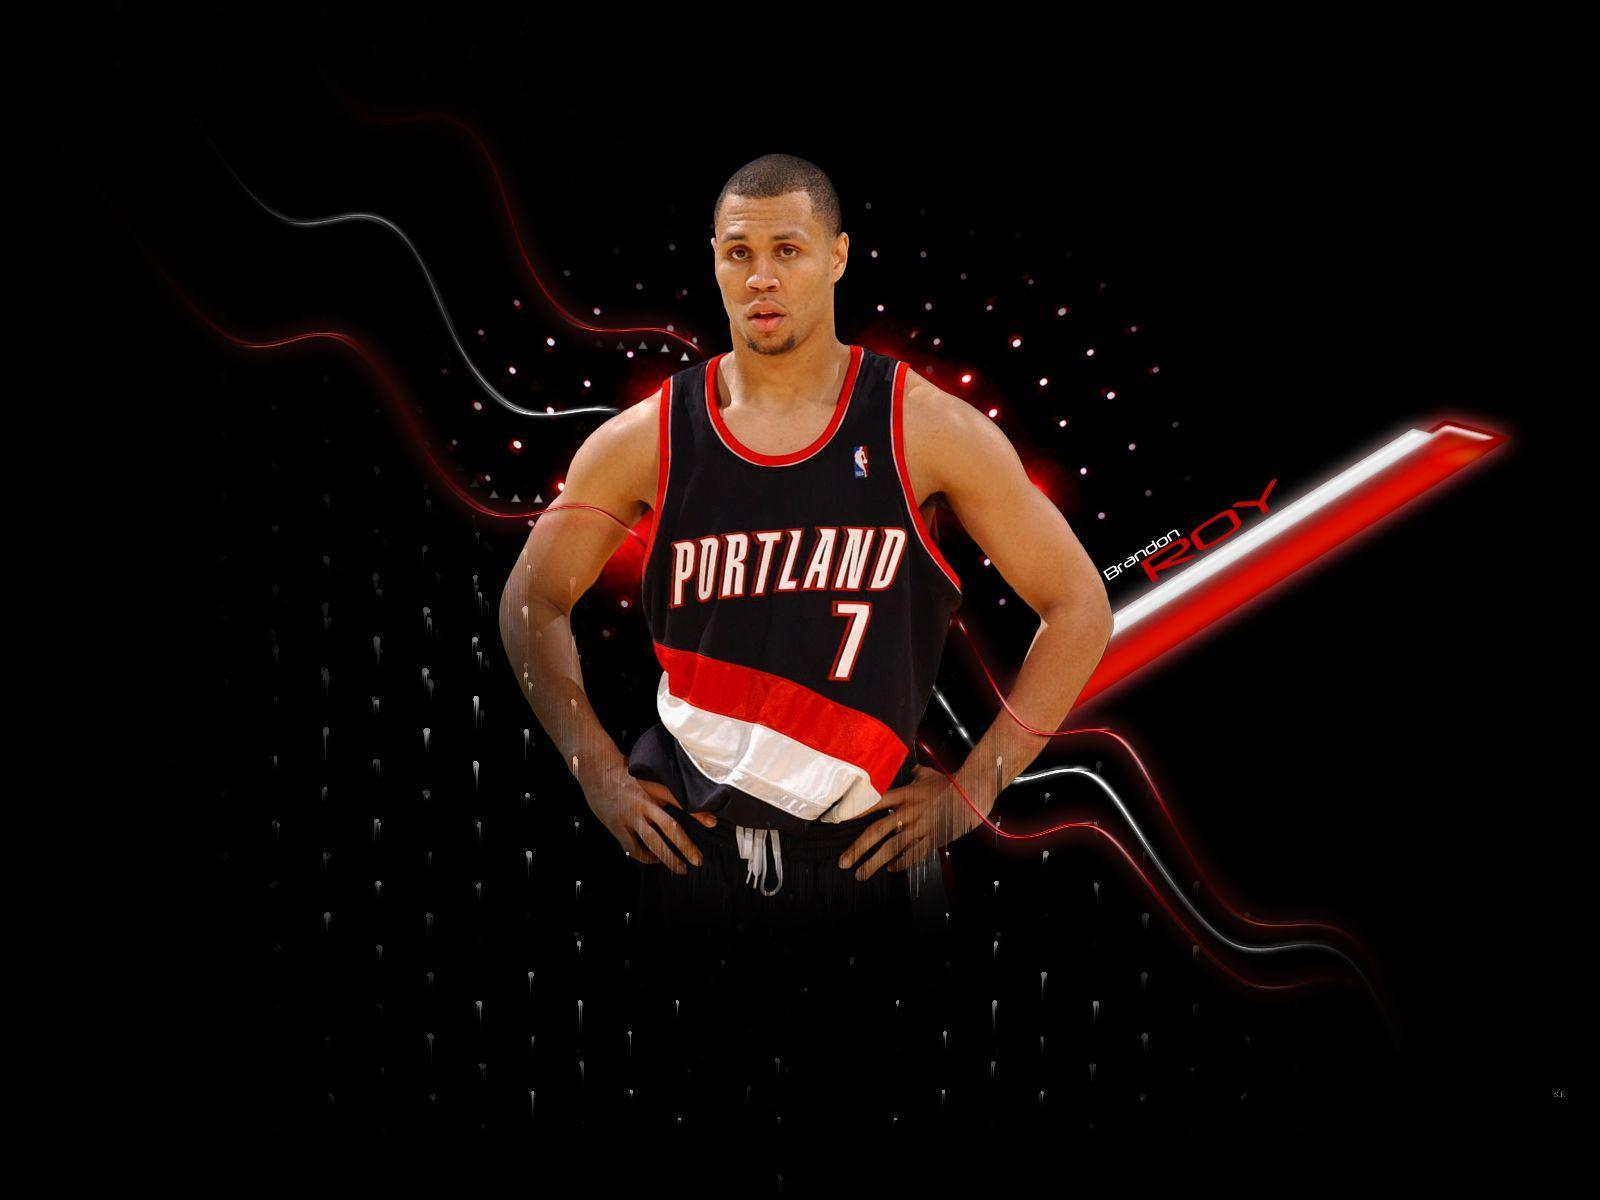 Portland Trailblazers images Brandon Roy HD wallpaper and ...